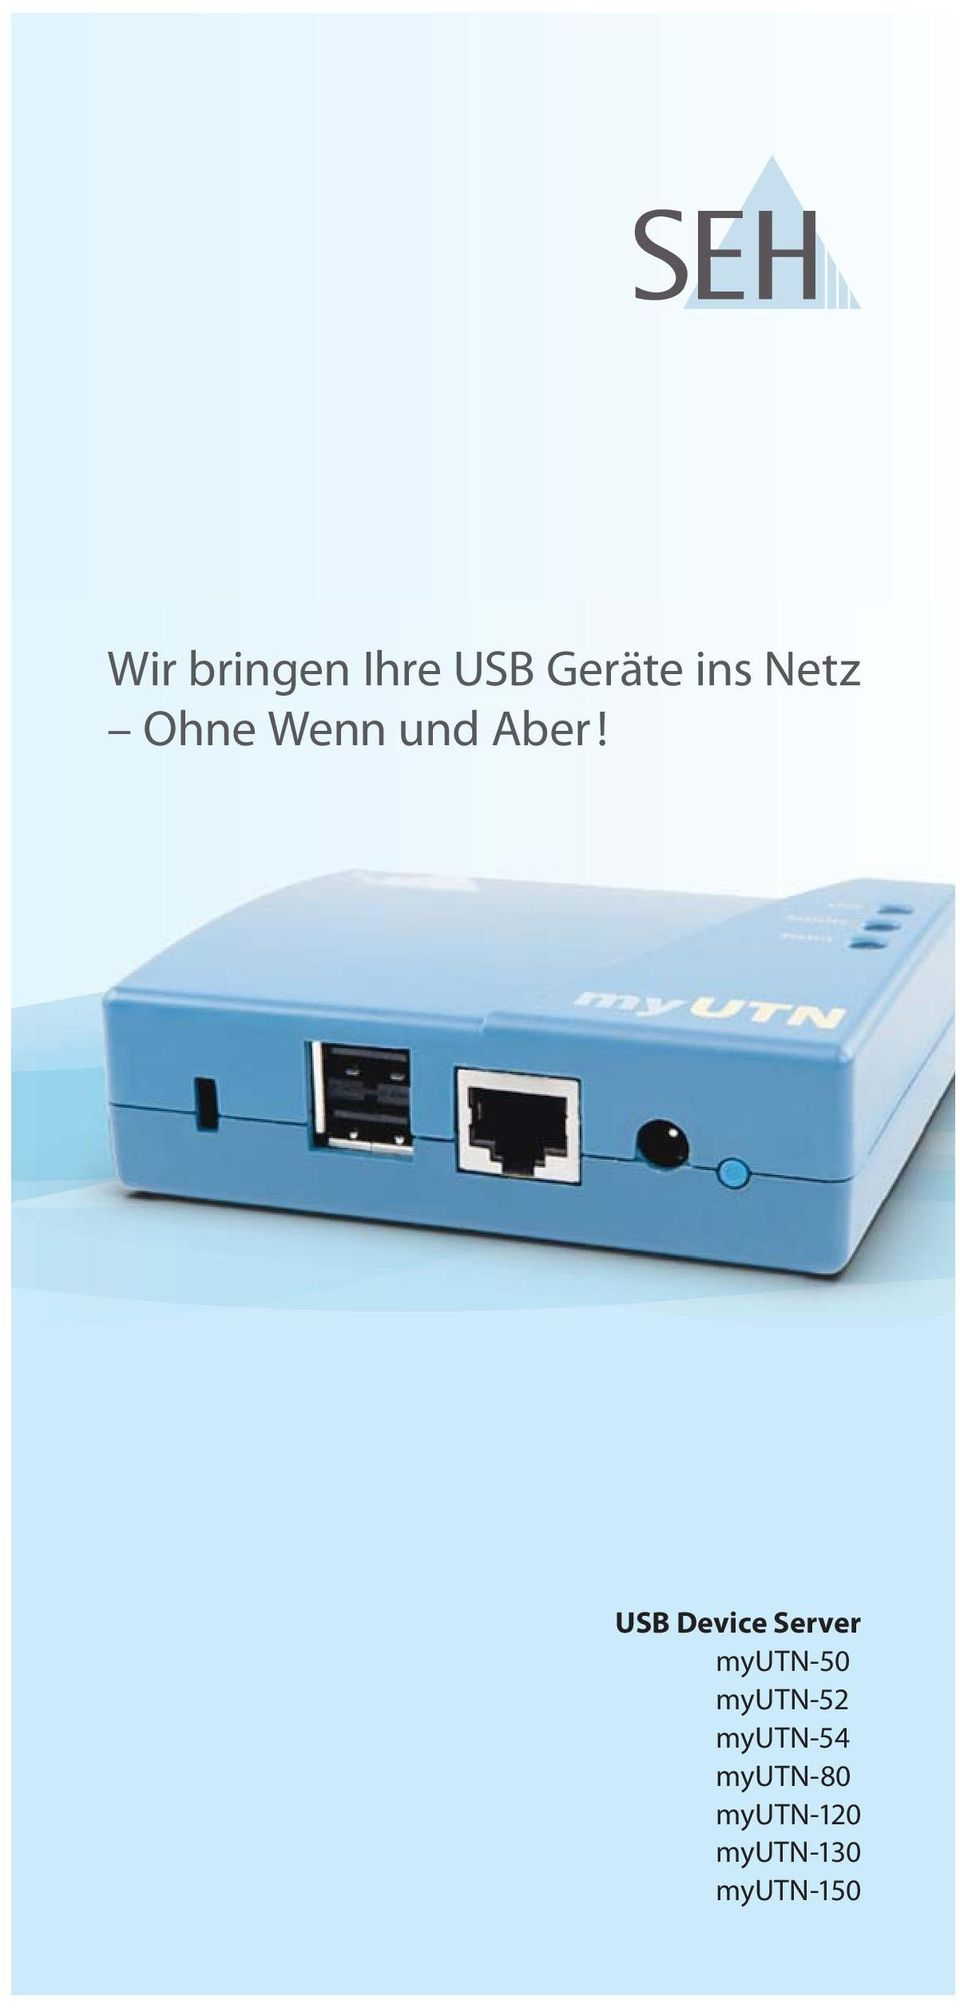 USB Device Server myutn-50